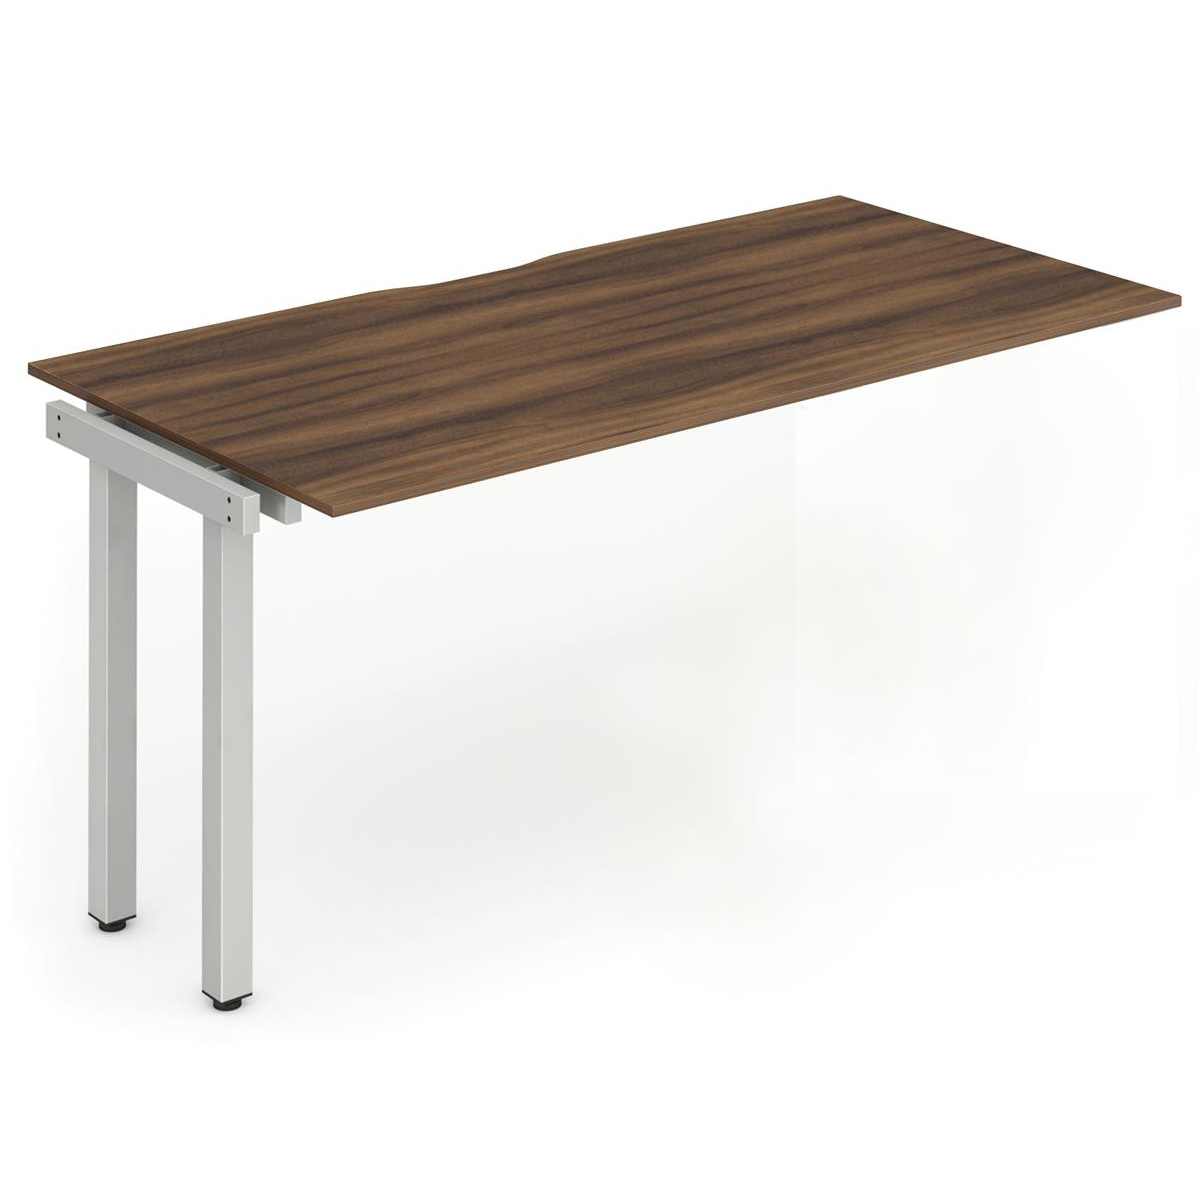 Trexus Bench Desk Single Extension Silver Leg 1600x800mm Walnut Ref BE329